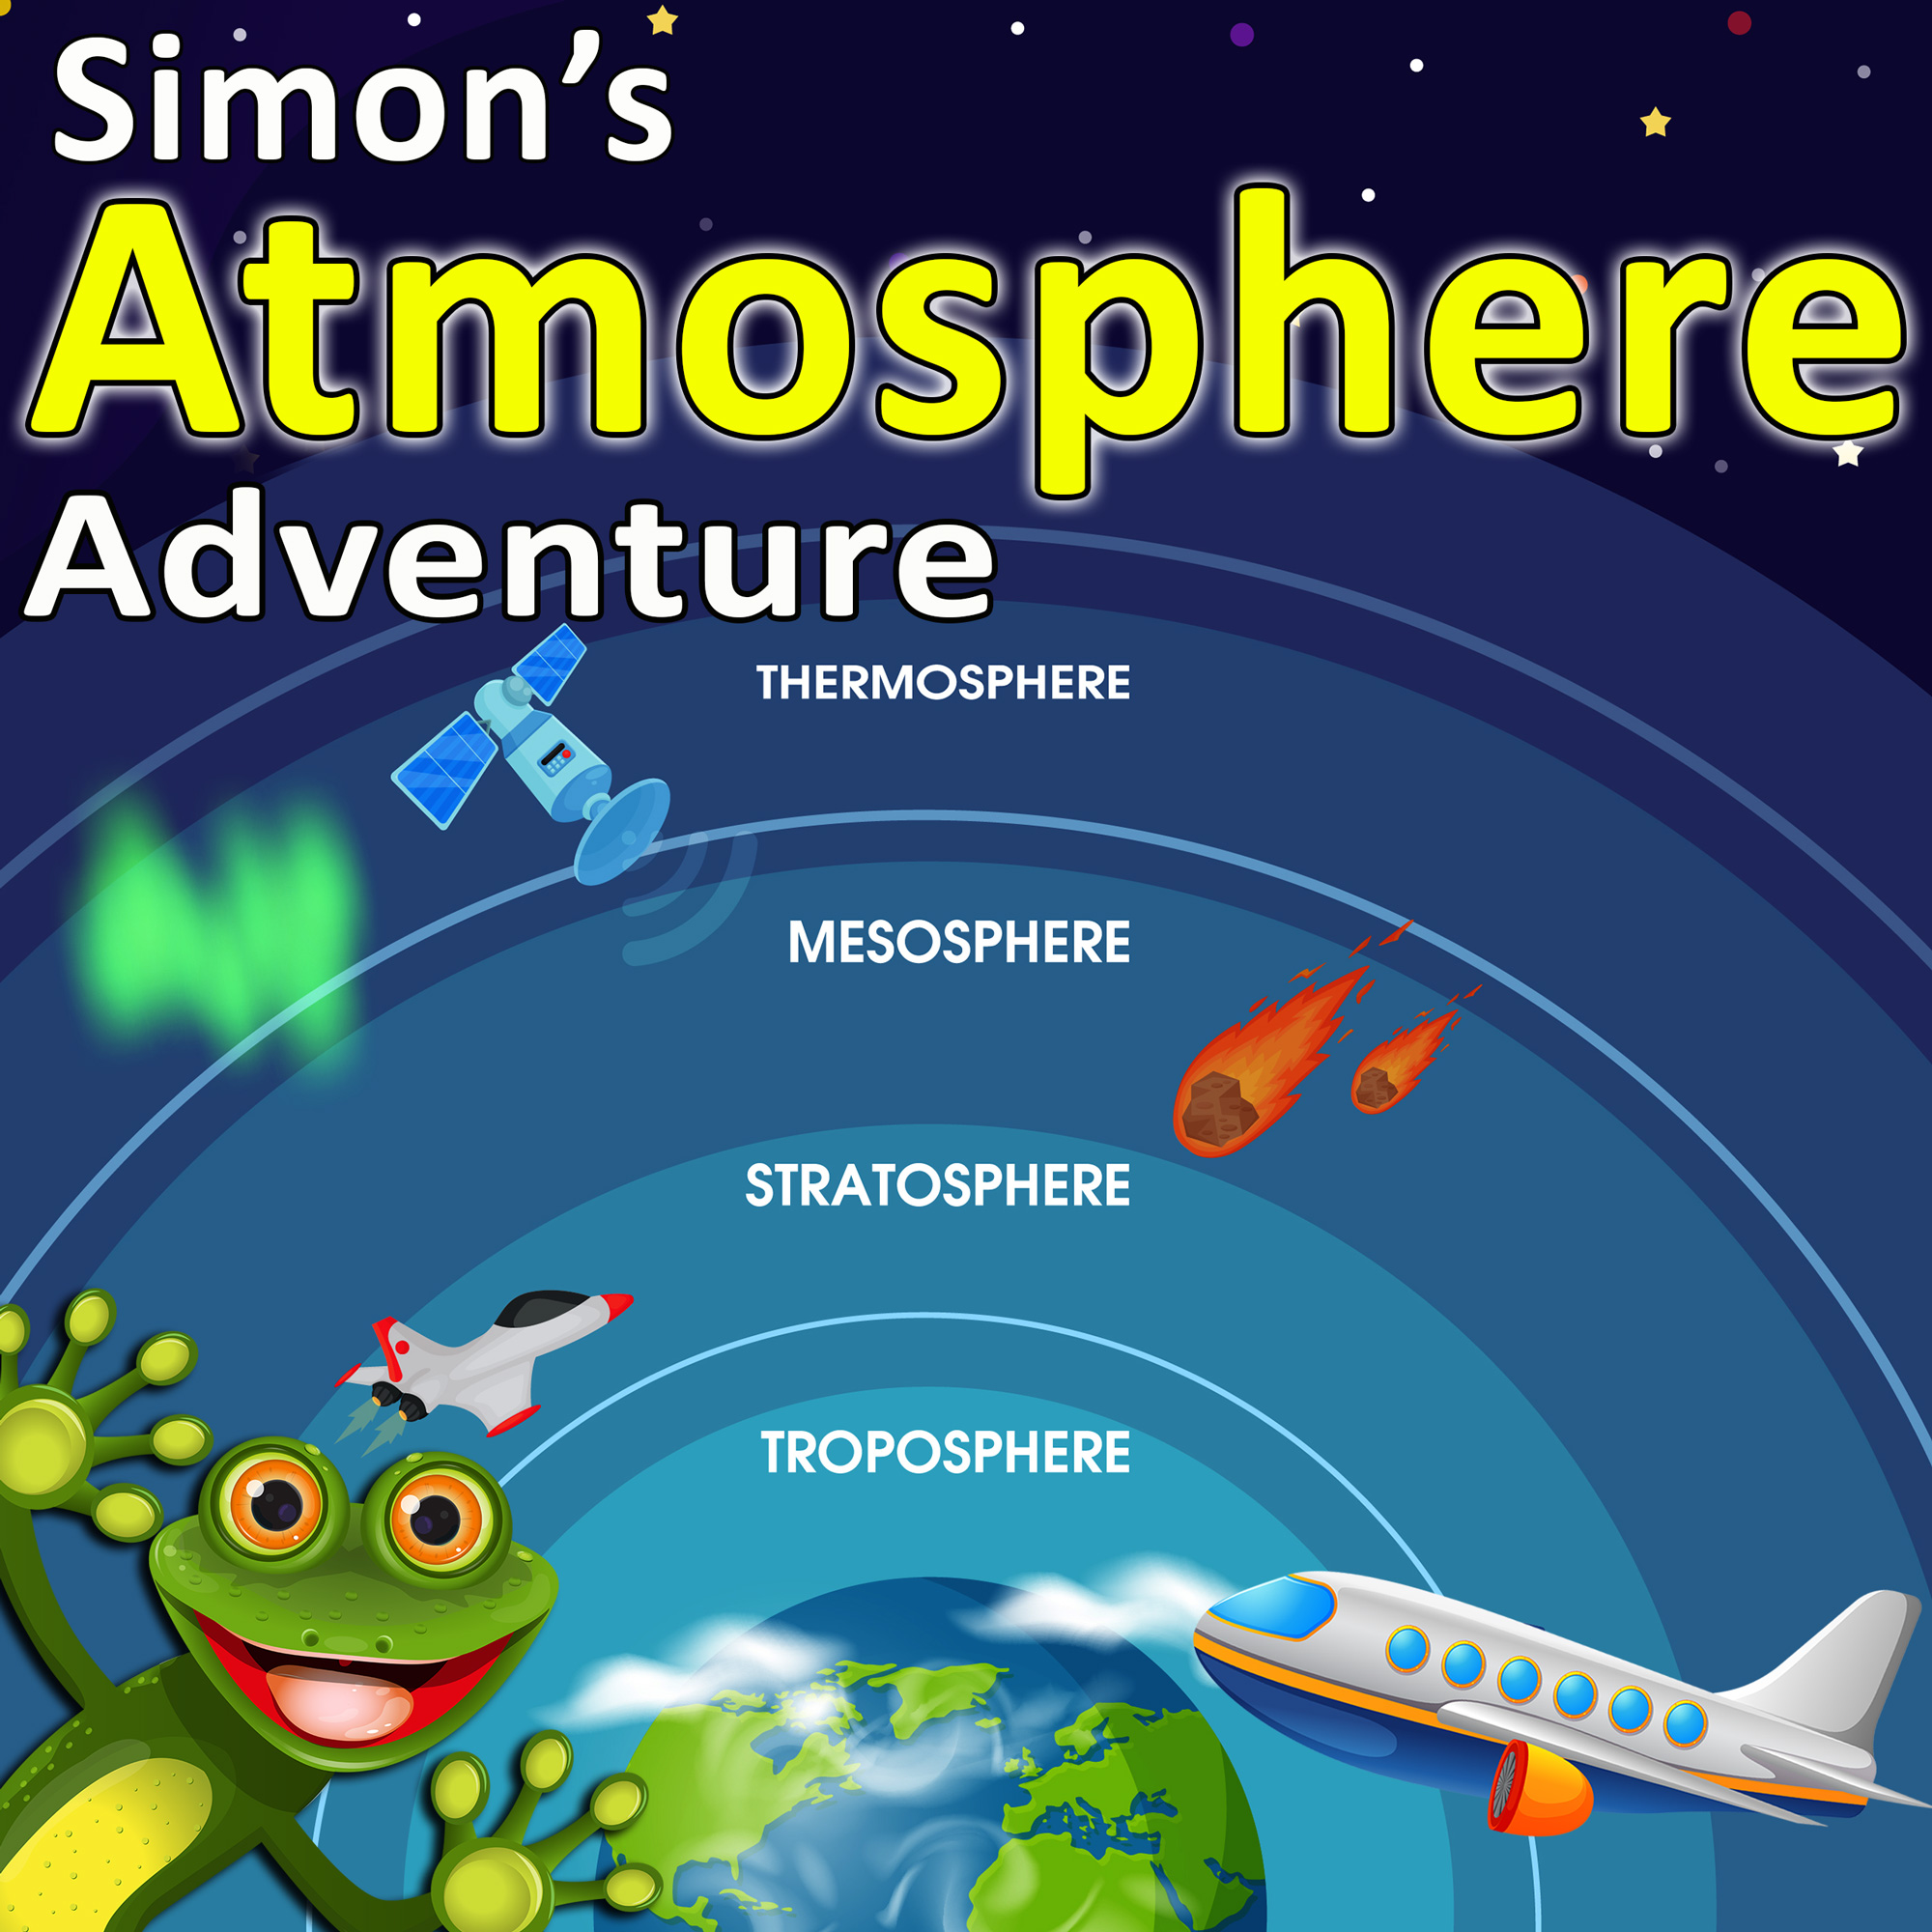 Simon's Atmosphere Adventure